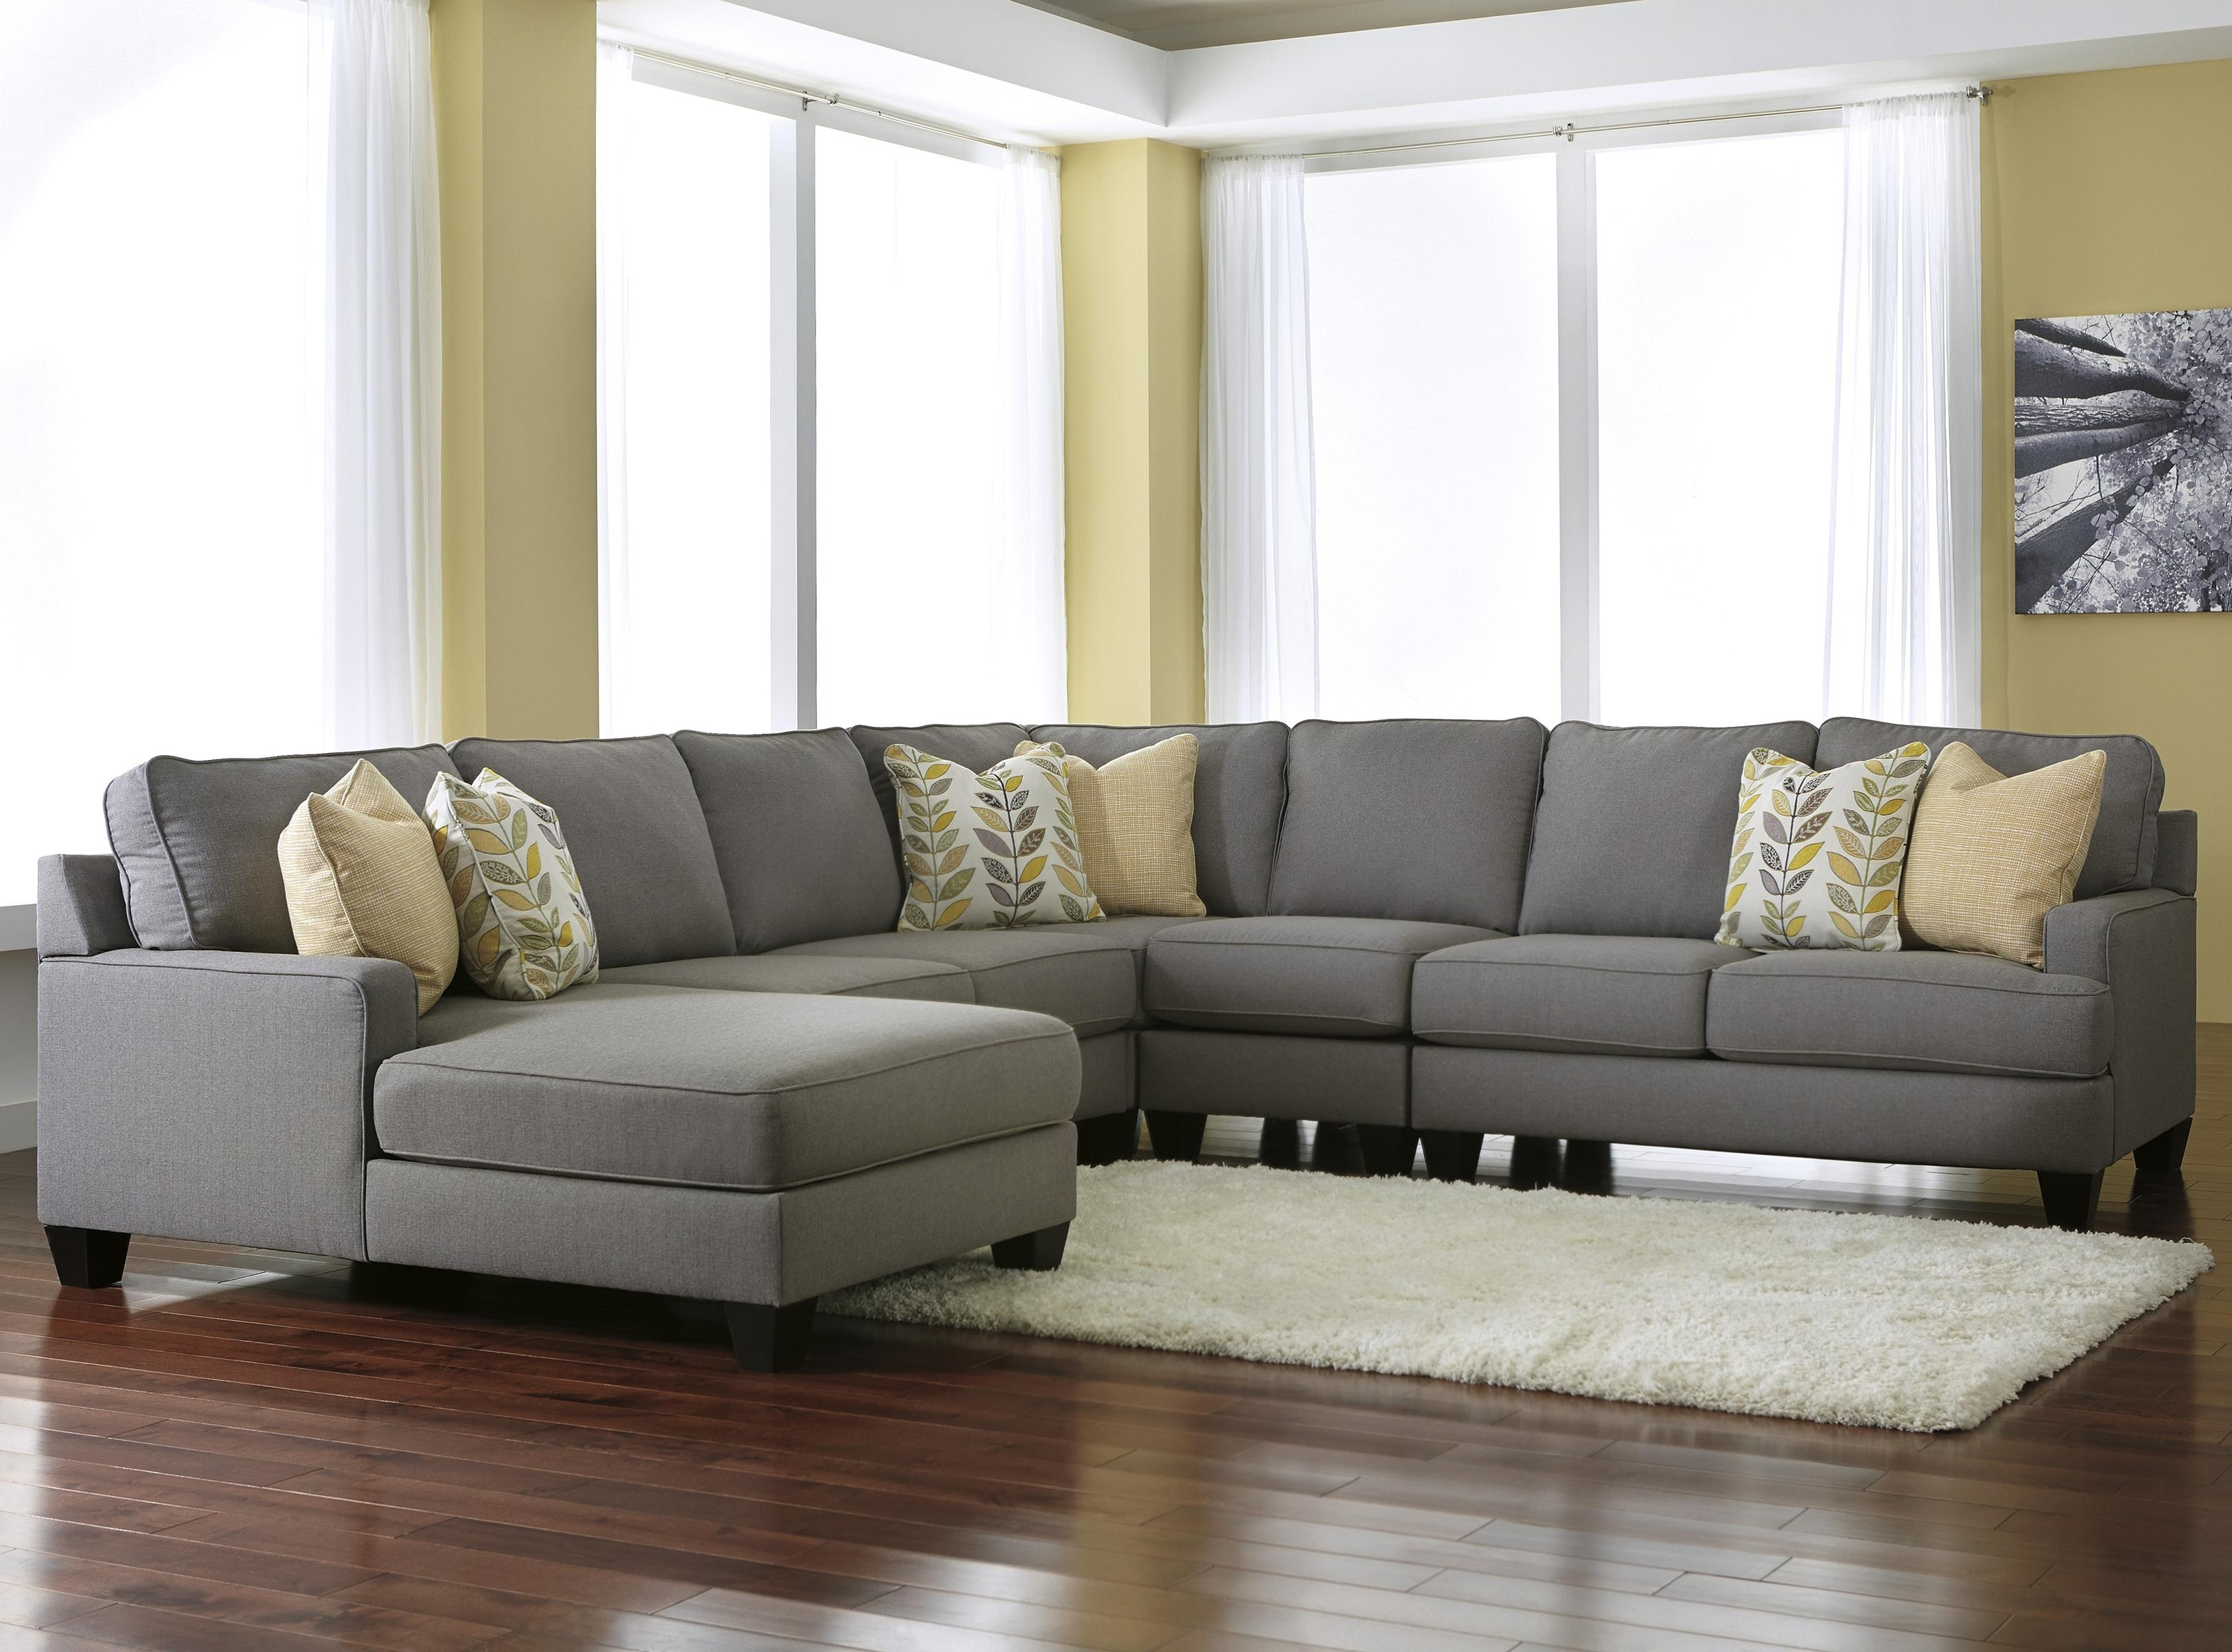 Modern 5 Piece Sectional Sofa With Left Chaise & Reversible Seat Regarding Sectional Sofas That Come In Pieces (Image 8 of 10)